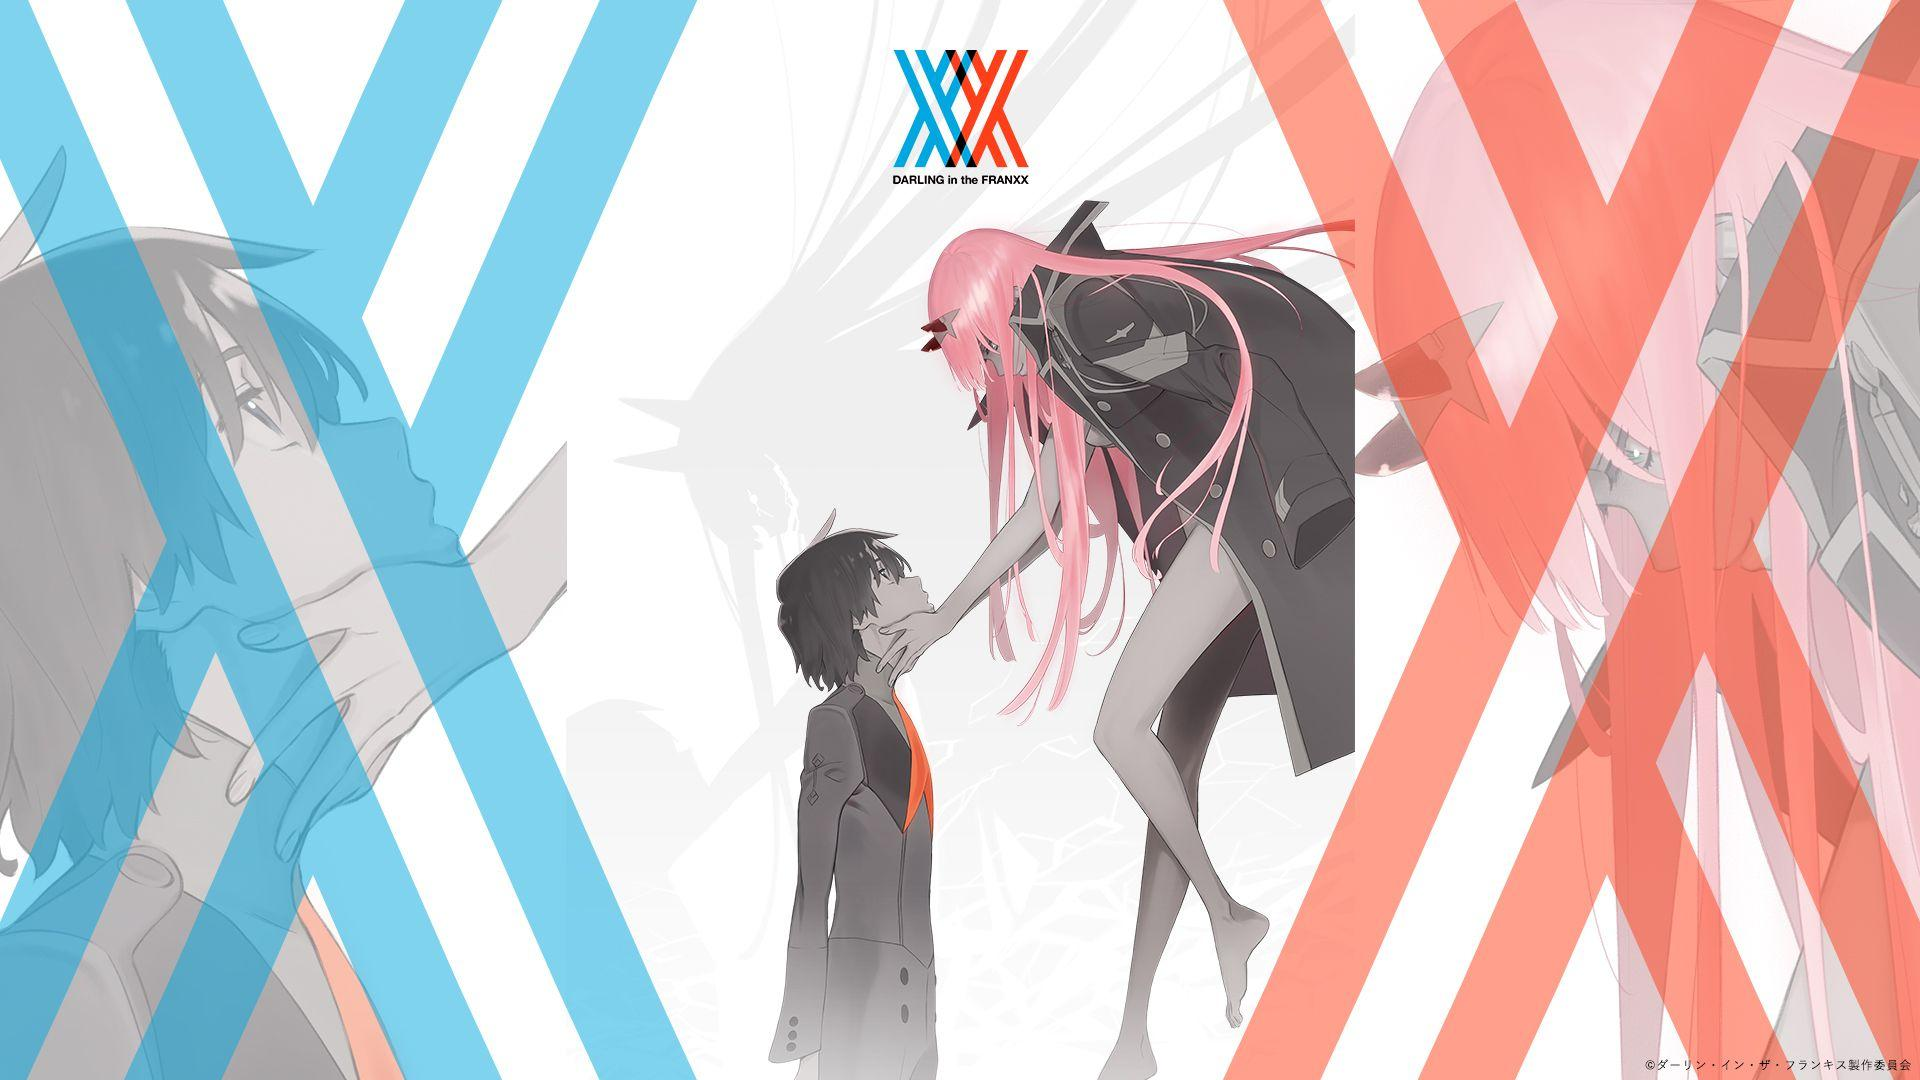 d060504fe2 Official Darling in the Franxx Wallpapers   DarlingInTheFranxx